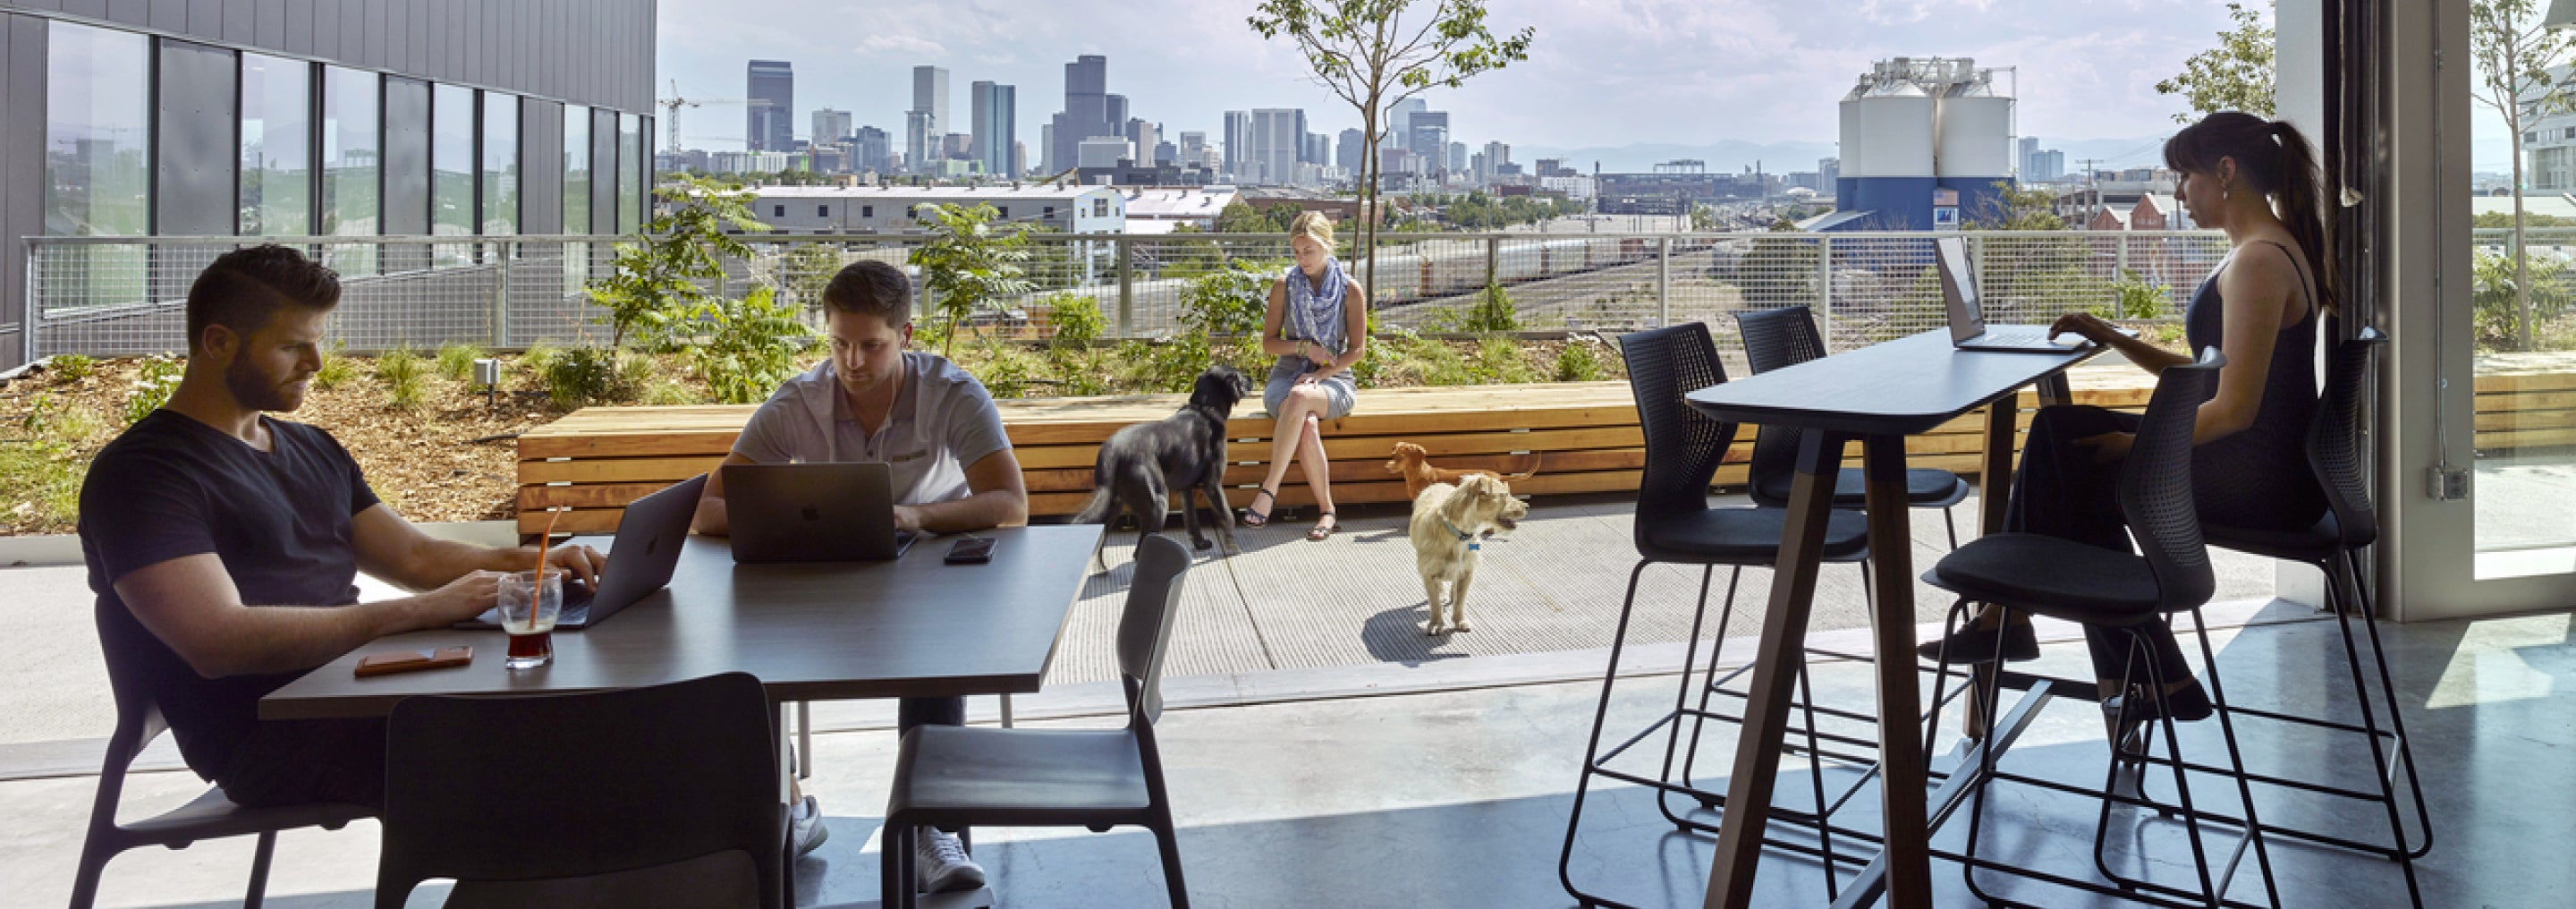 Three people work on laptops at indoor tables while another person and two dogs interact outside on the patio